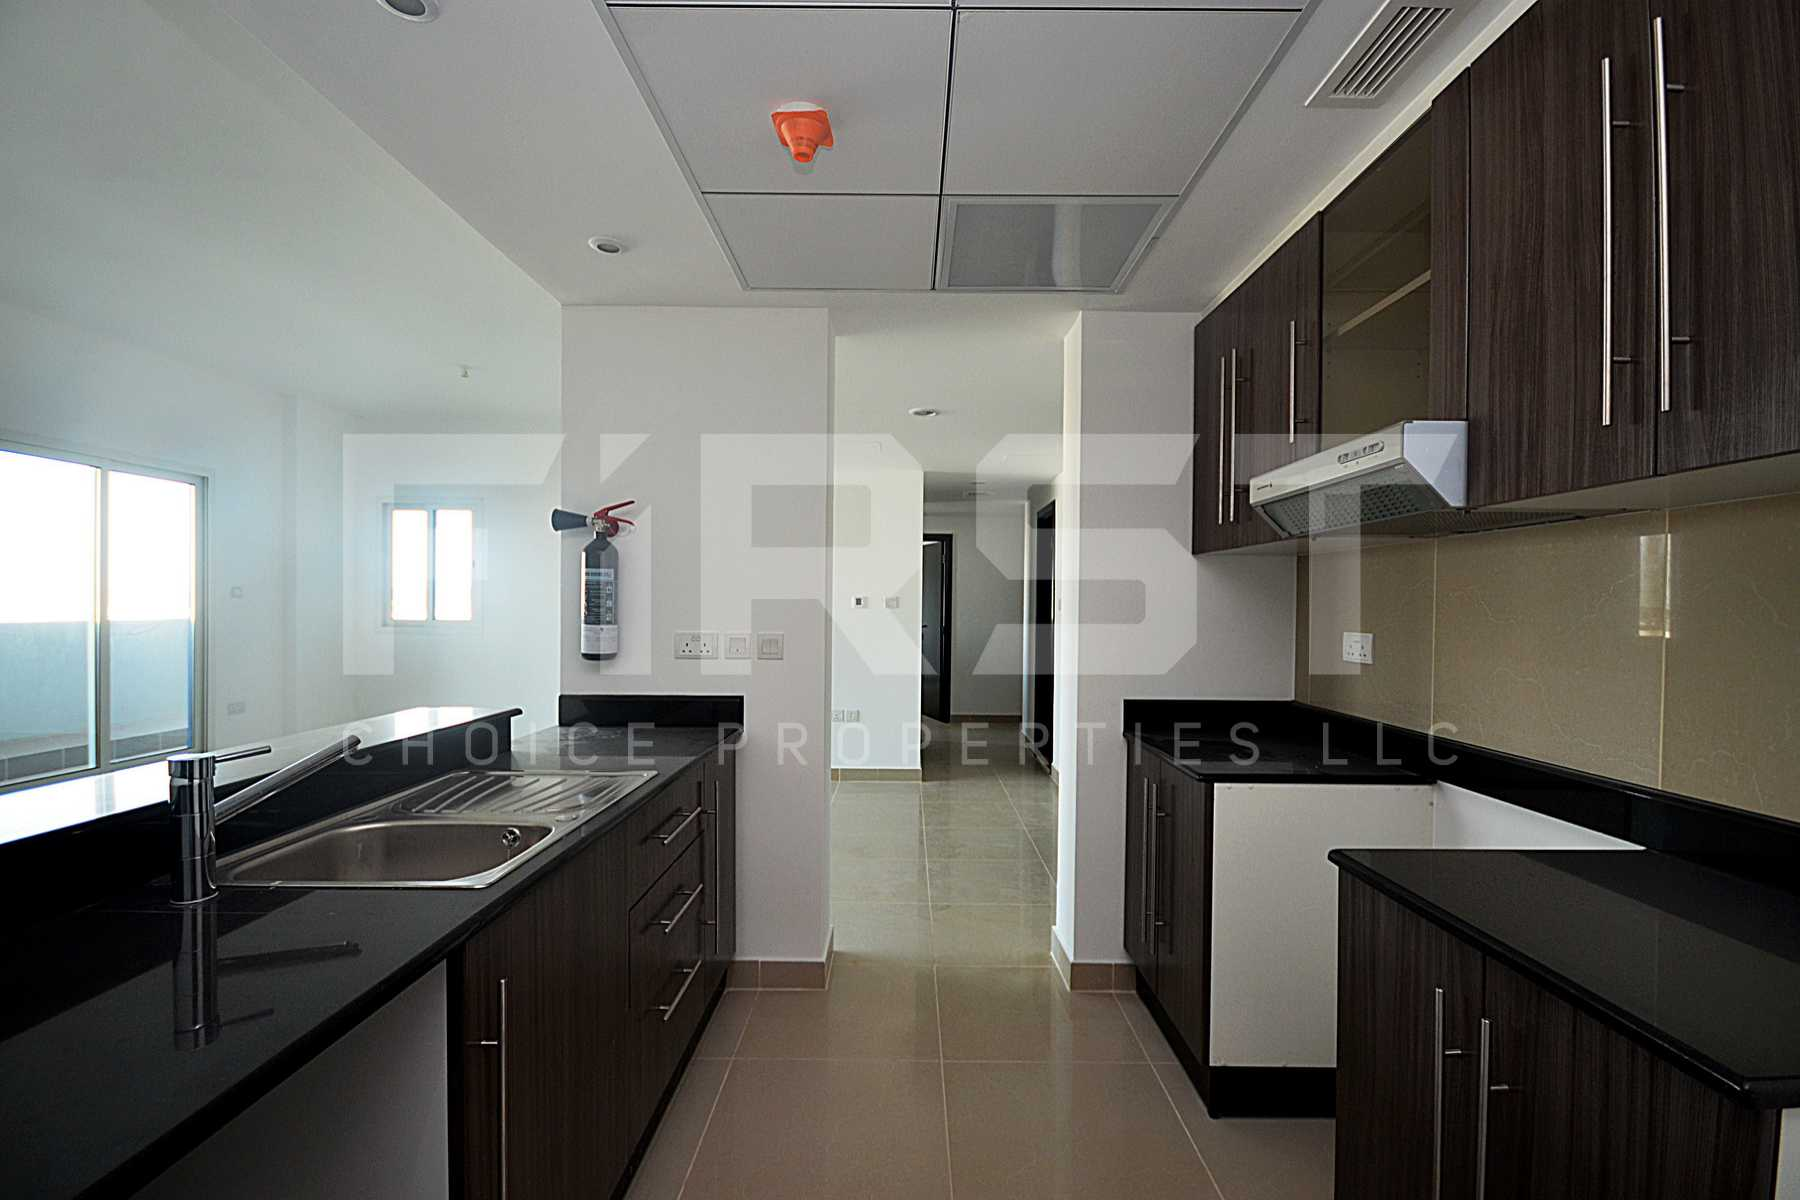 5. Internal Photo of 3 Bedroom Apartment Type D Open Kitchen in Al Reef Downtown Al Reef Abu Dhabi UAE 145sq.m 1560 sq.ft (7).jpg